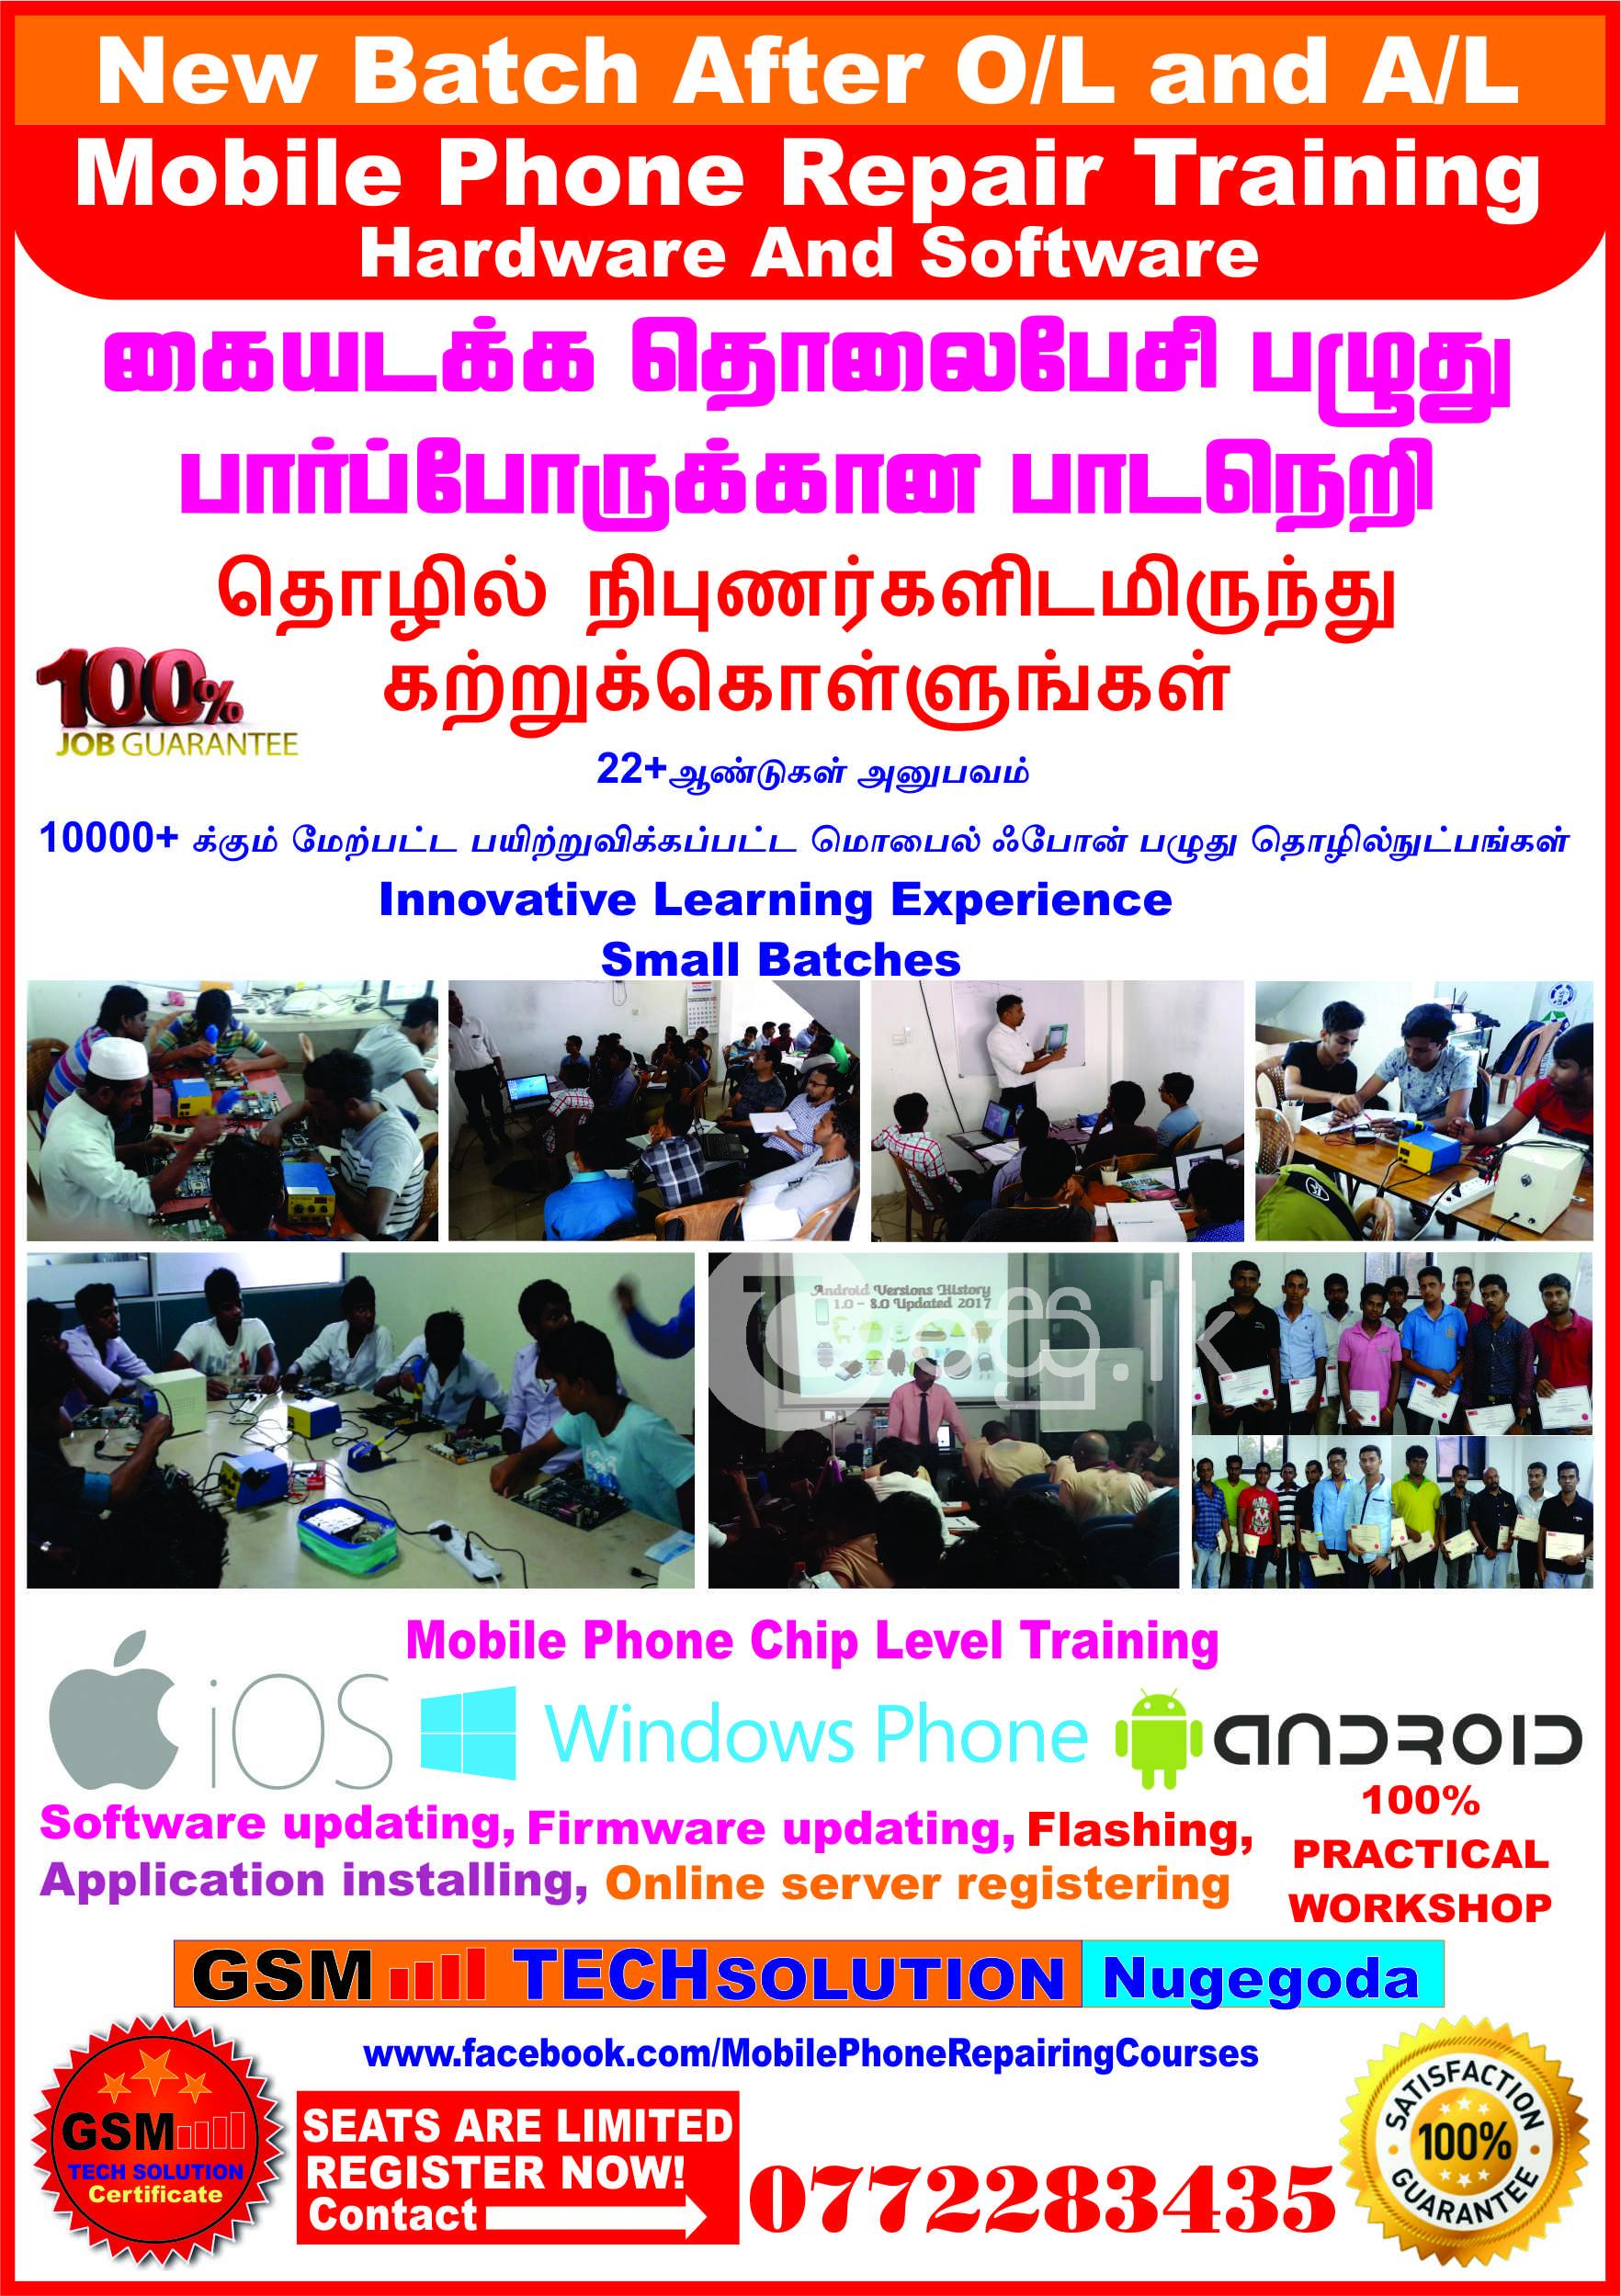 mobile phone repair course in Tamil  colombo  Sri lanka Vocational Institutes in Nugegoda